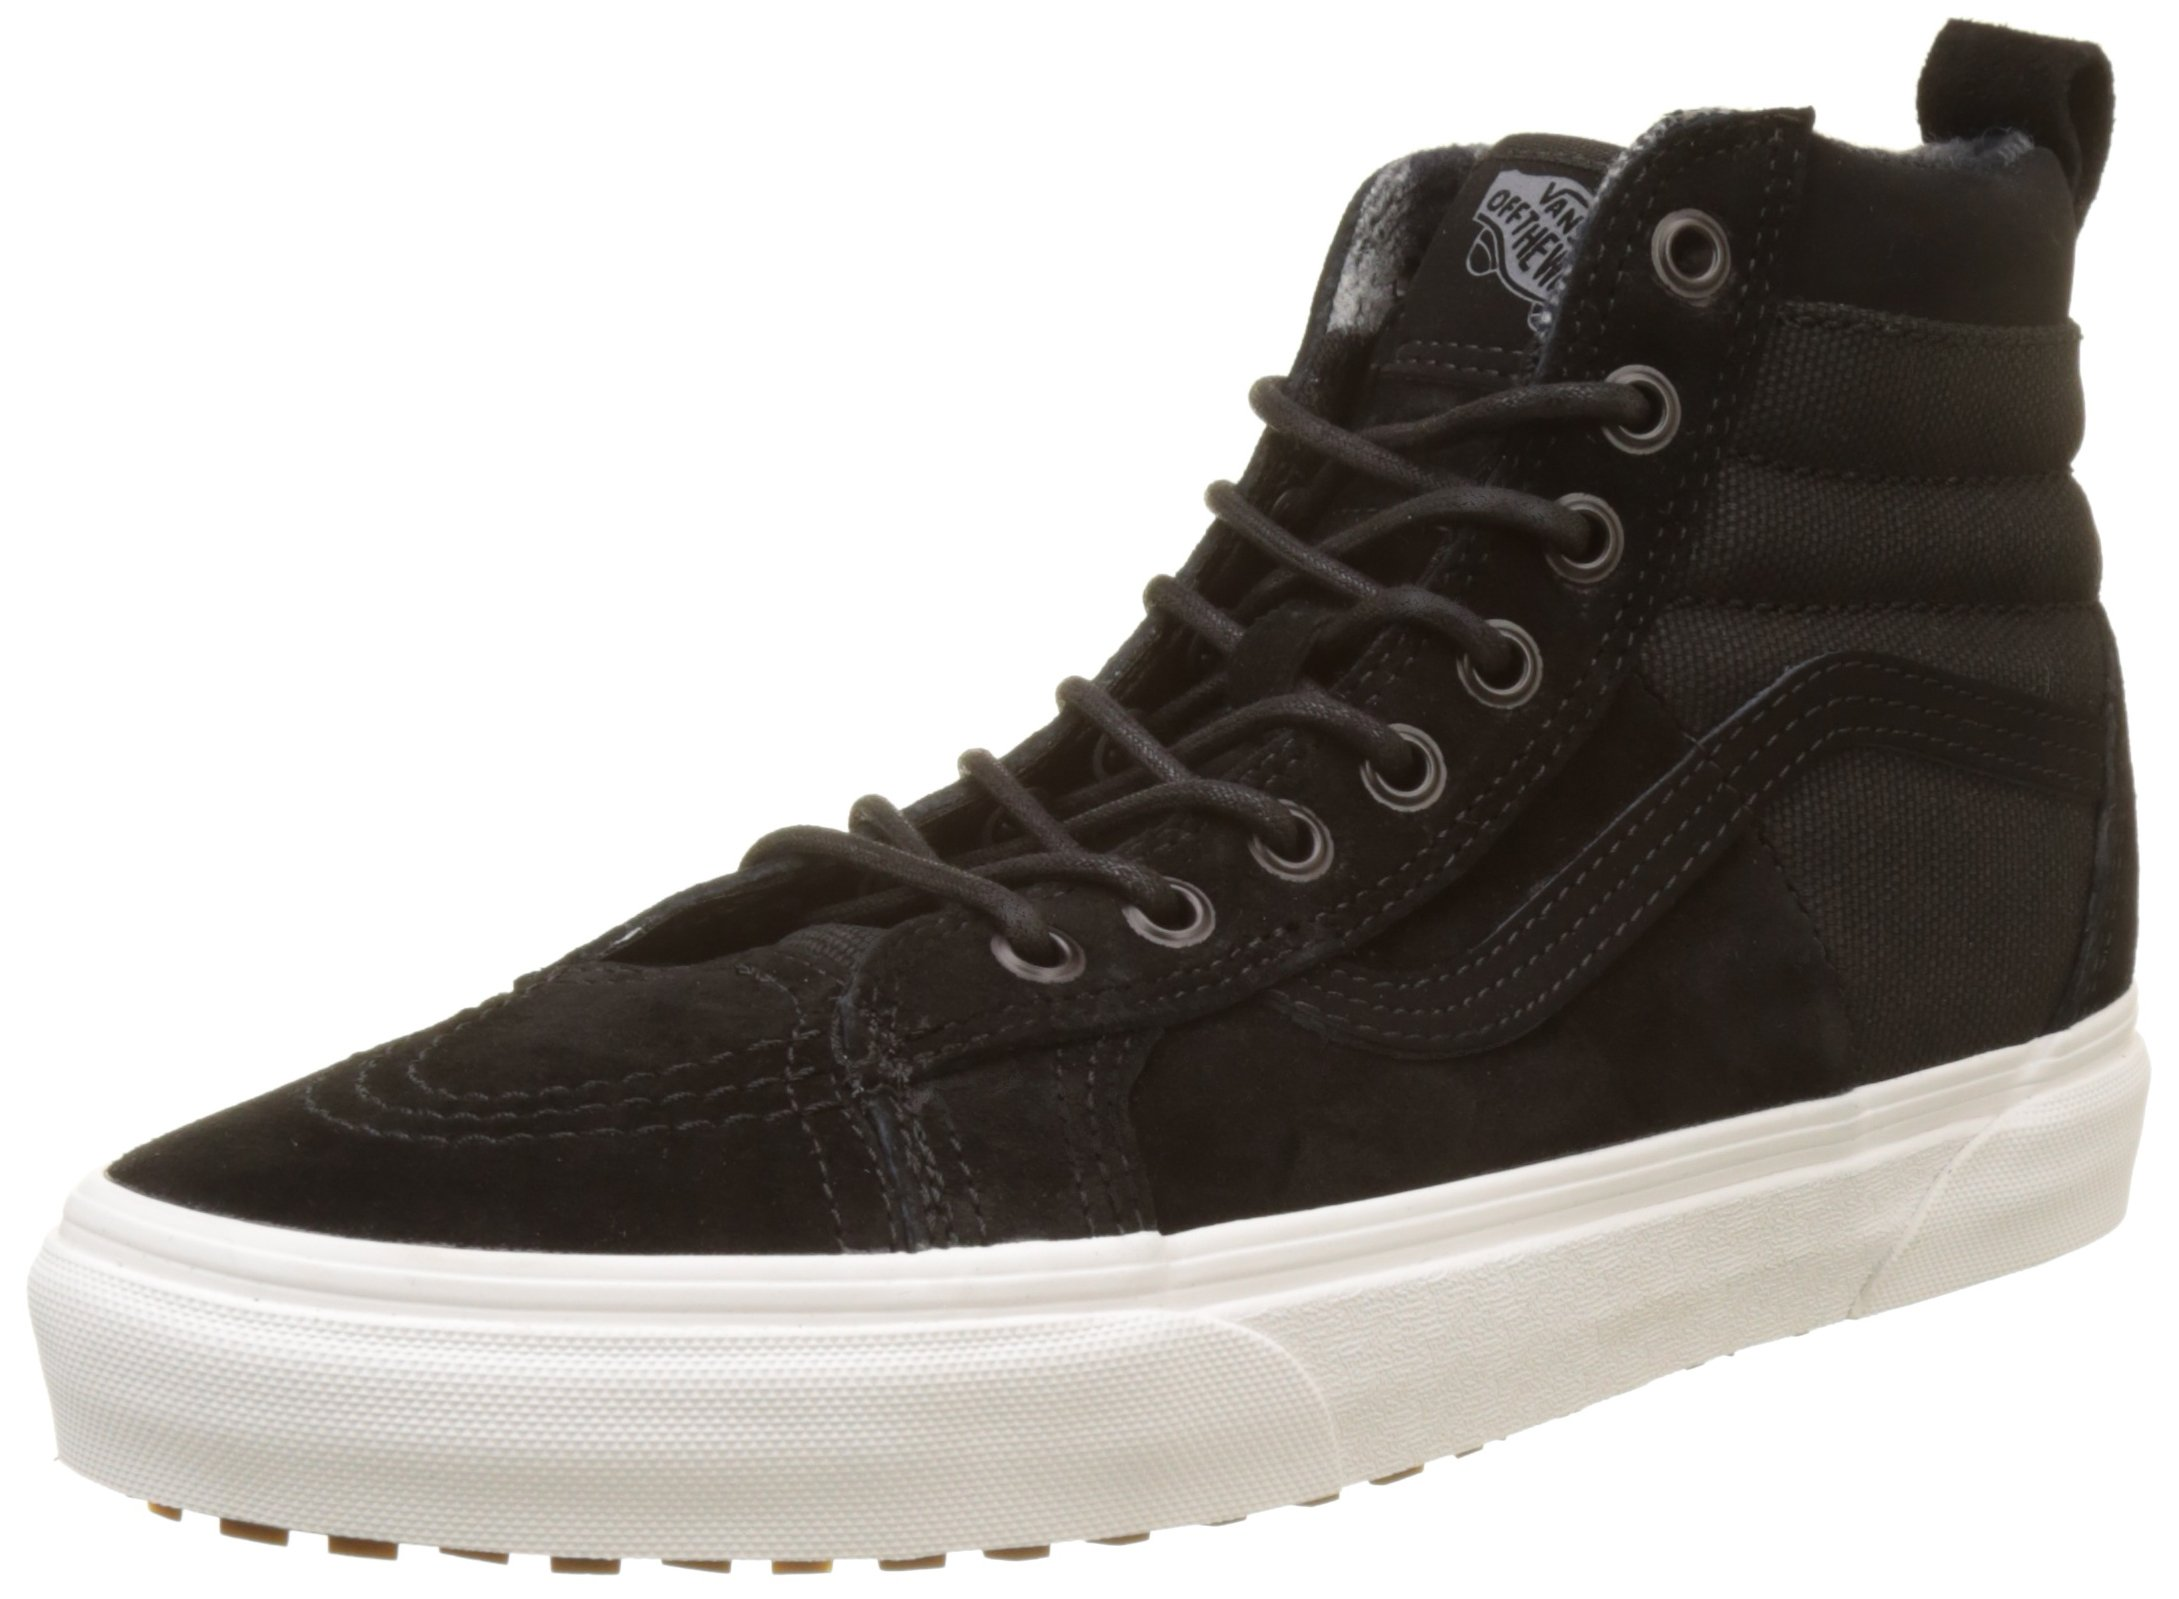 Vans Men's Sk8 Hi 46 MTE DX Skate Shoes (7.5 D(M) US, Black) by Vans